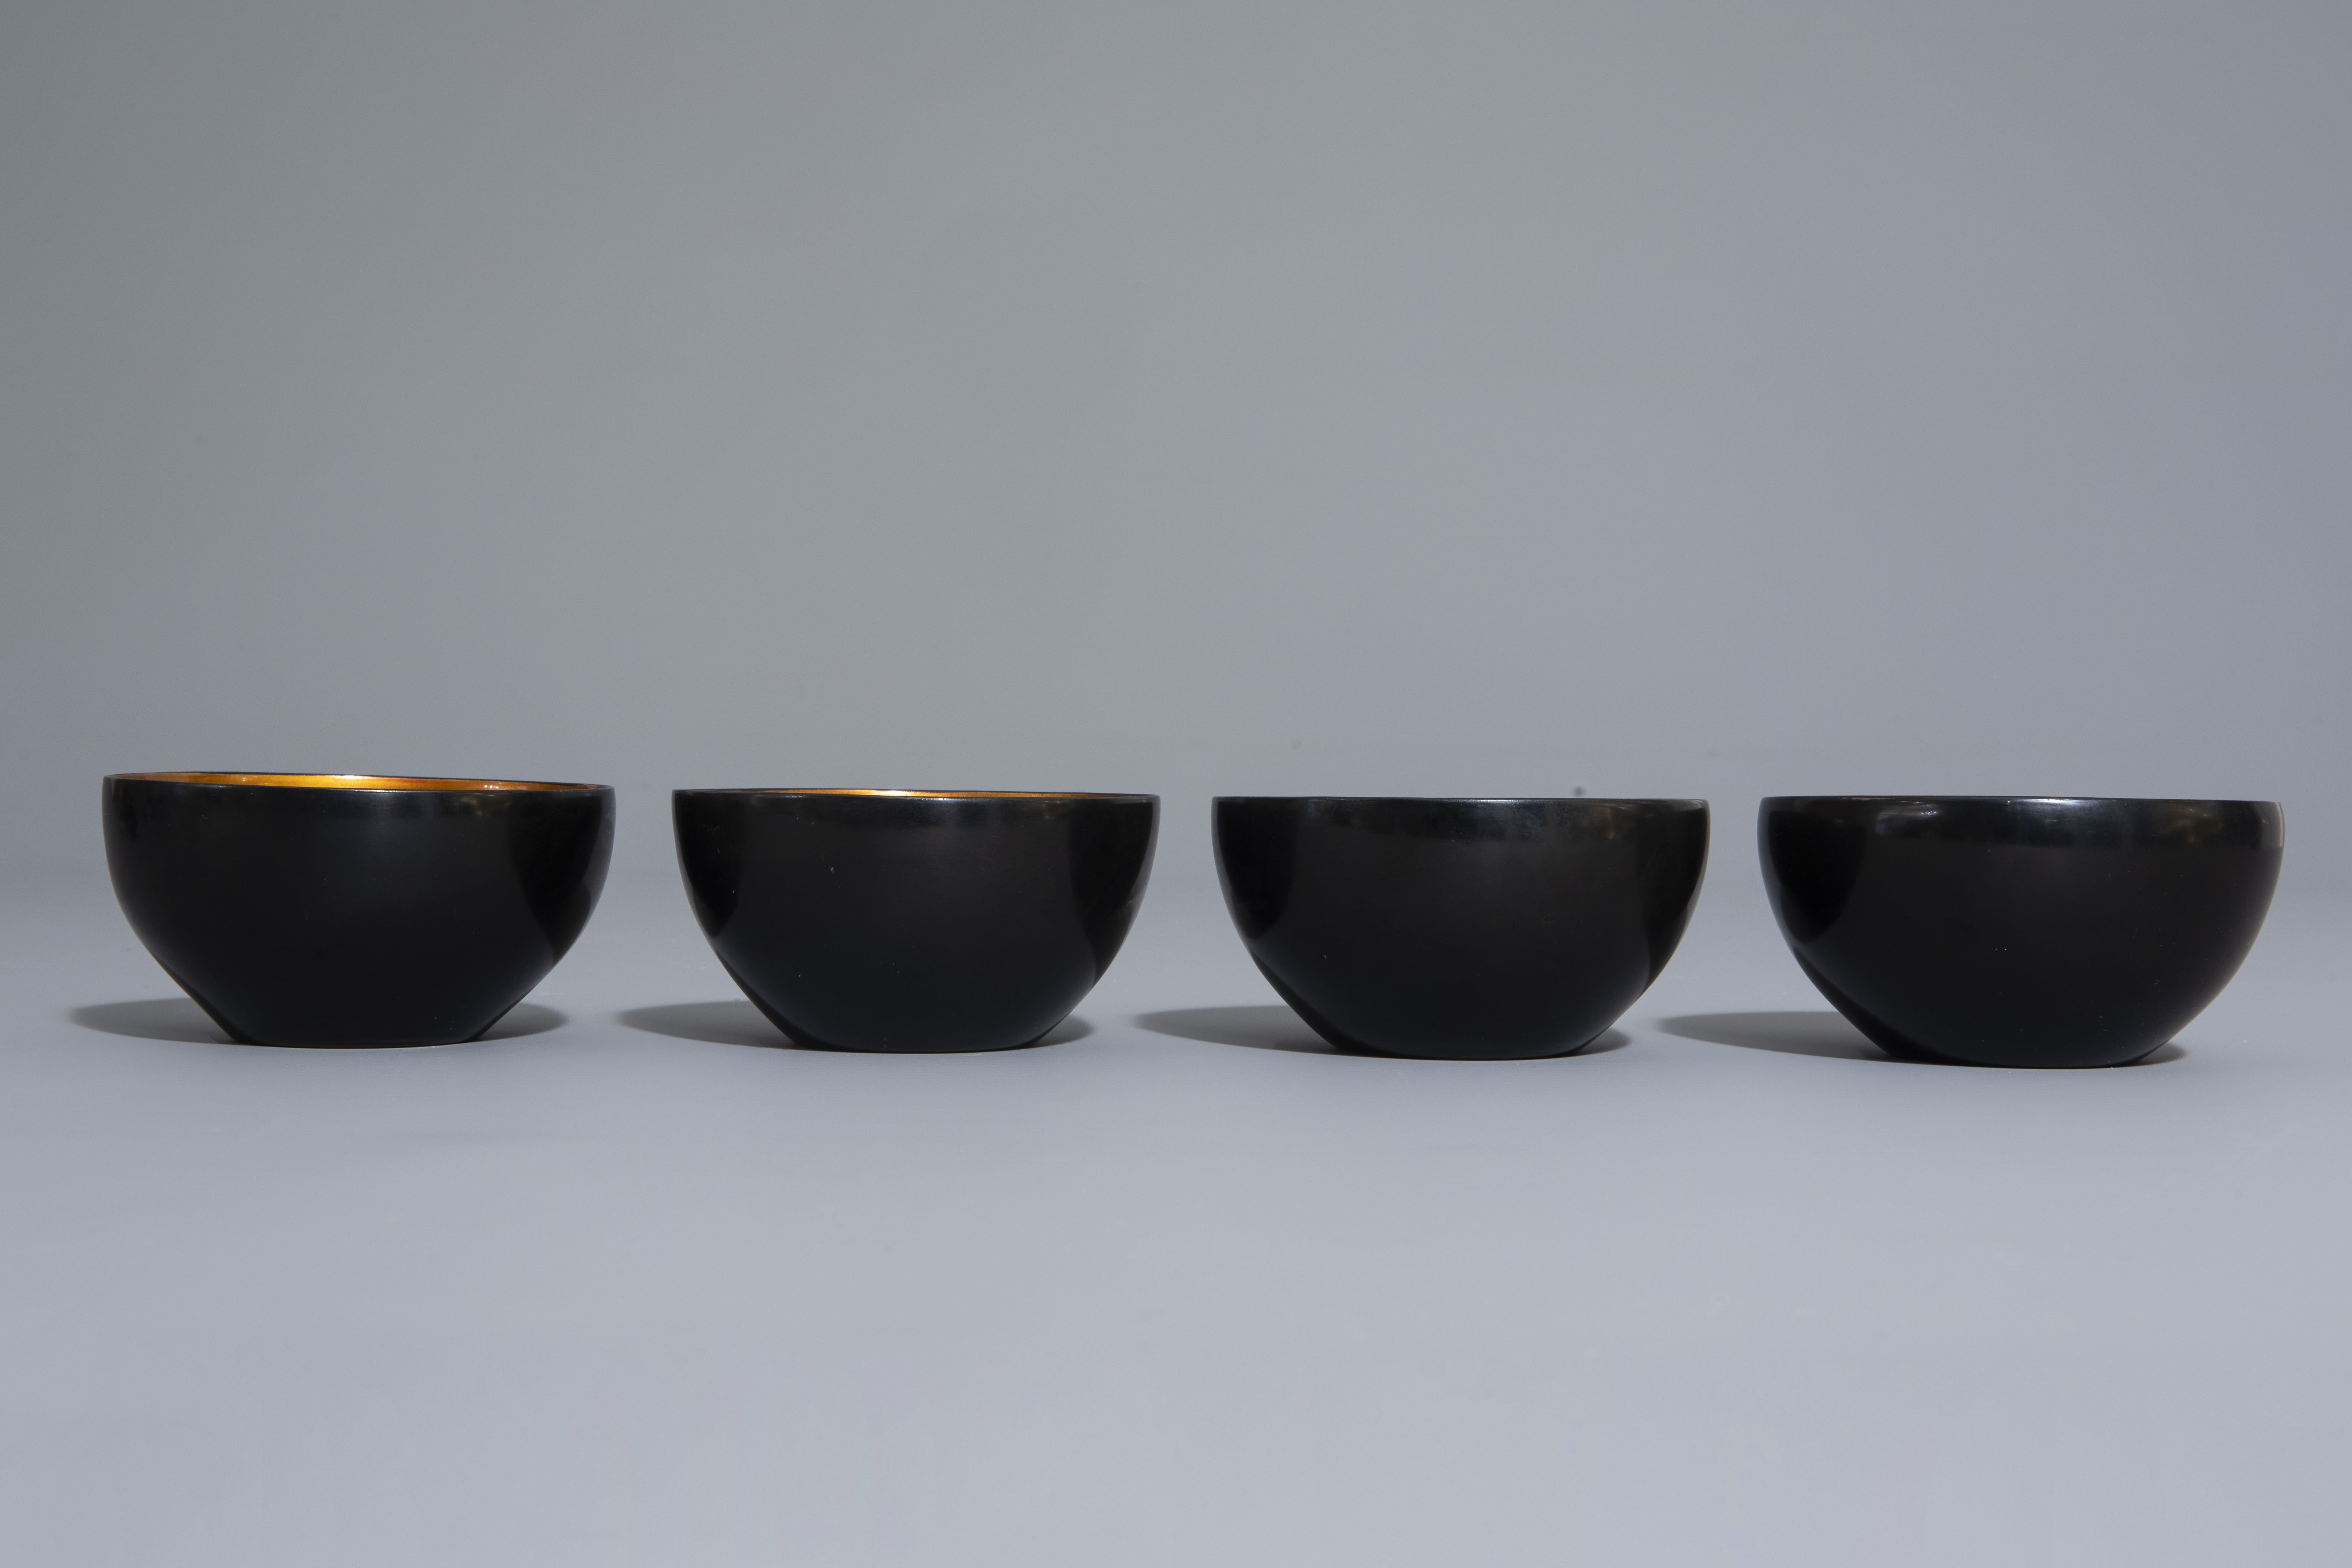 An extensive Chinese Foochow lacquer Shen Shao'an style coffee and tea service, 20th C. - Image 10 of 23